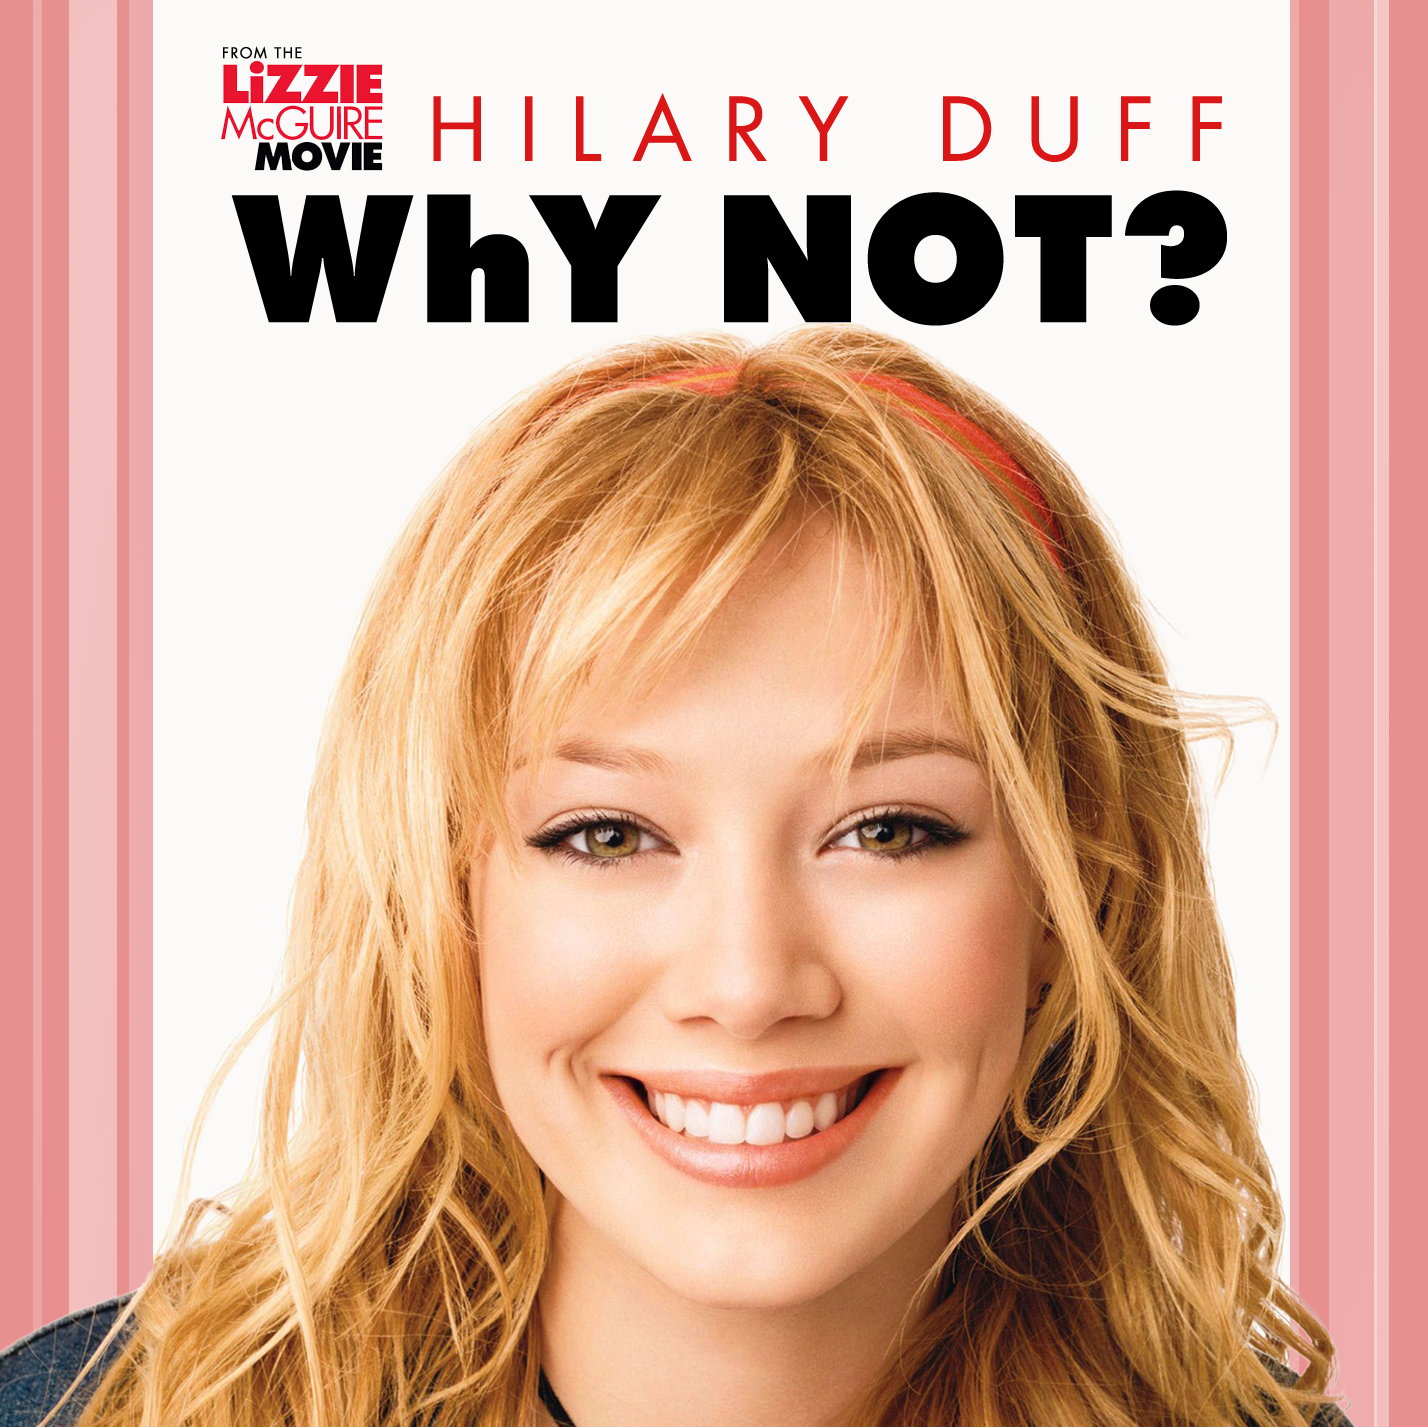 Music Is My Imaginary Friend: Tick Tock: Songs 251 to 260 Hilary Duff Songs